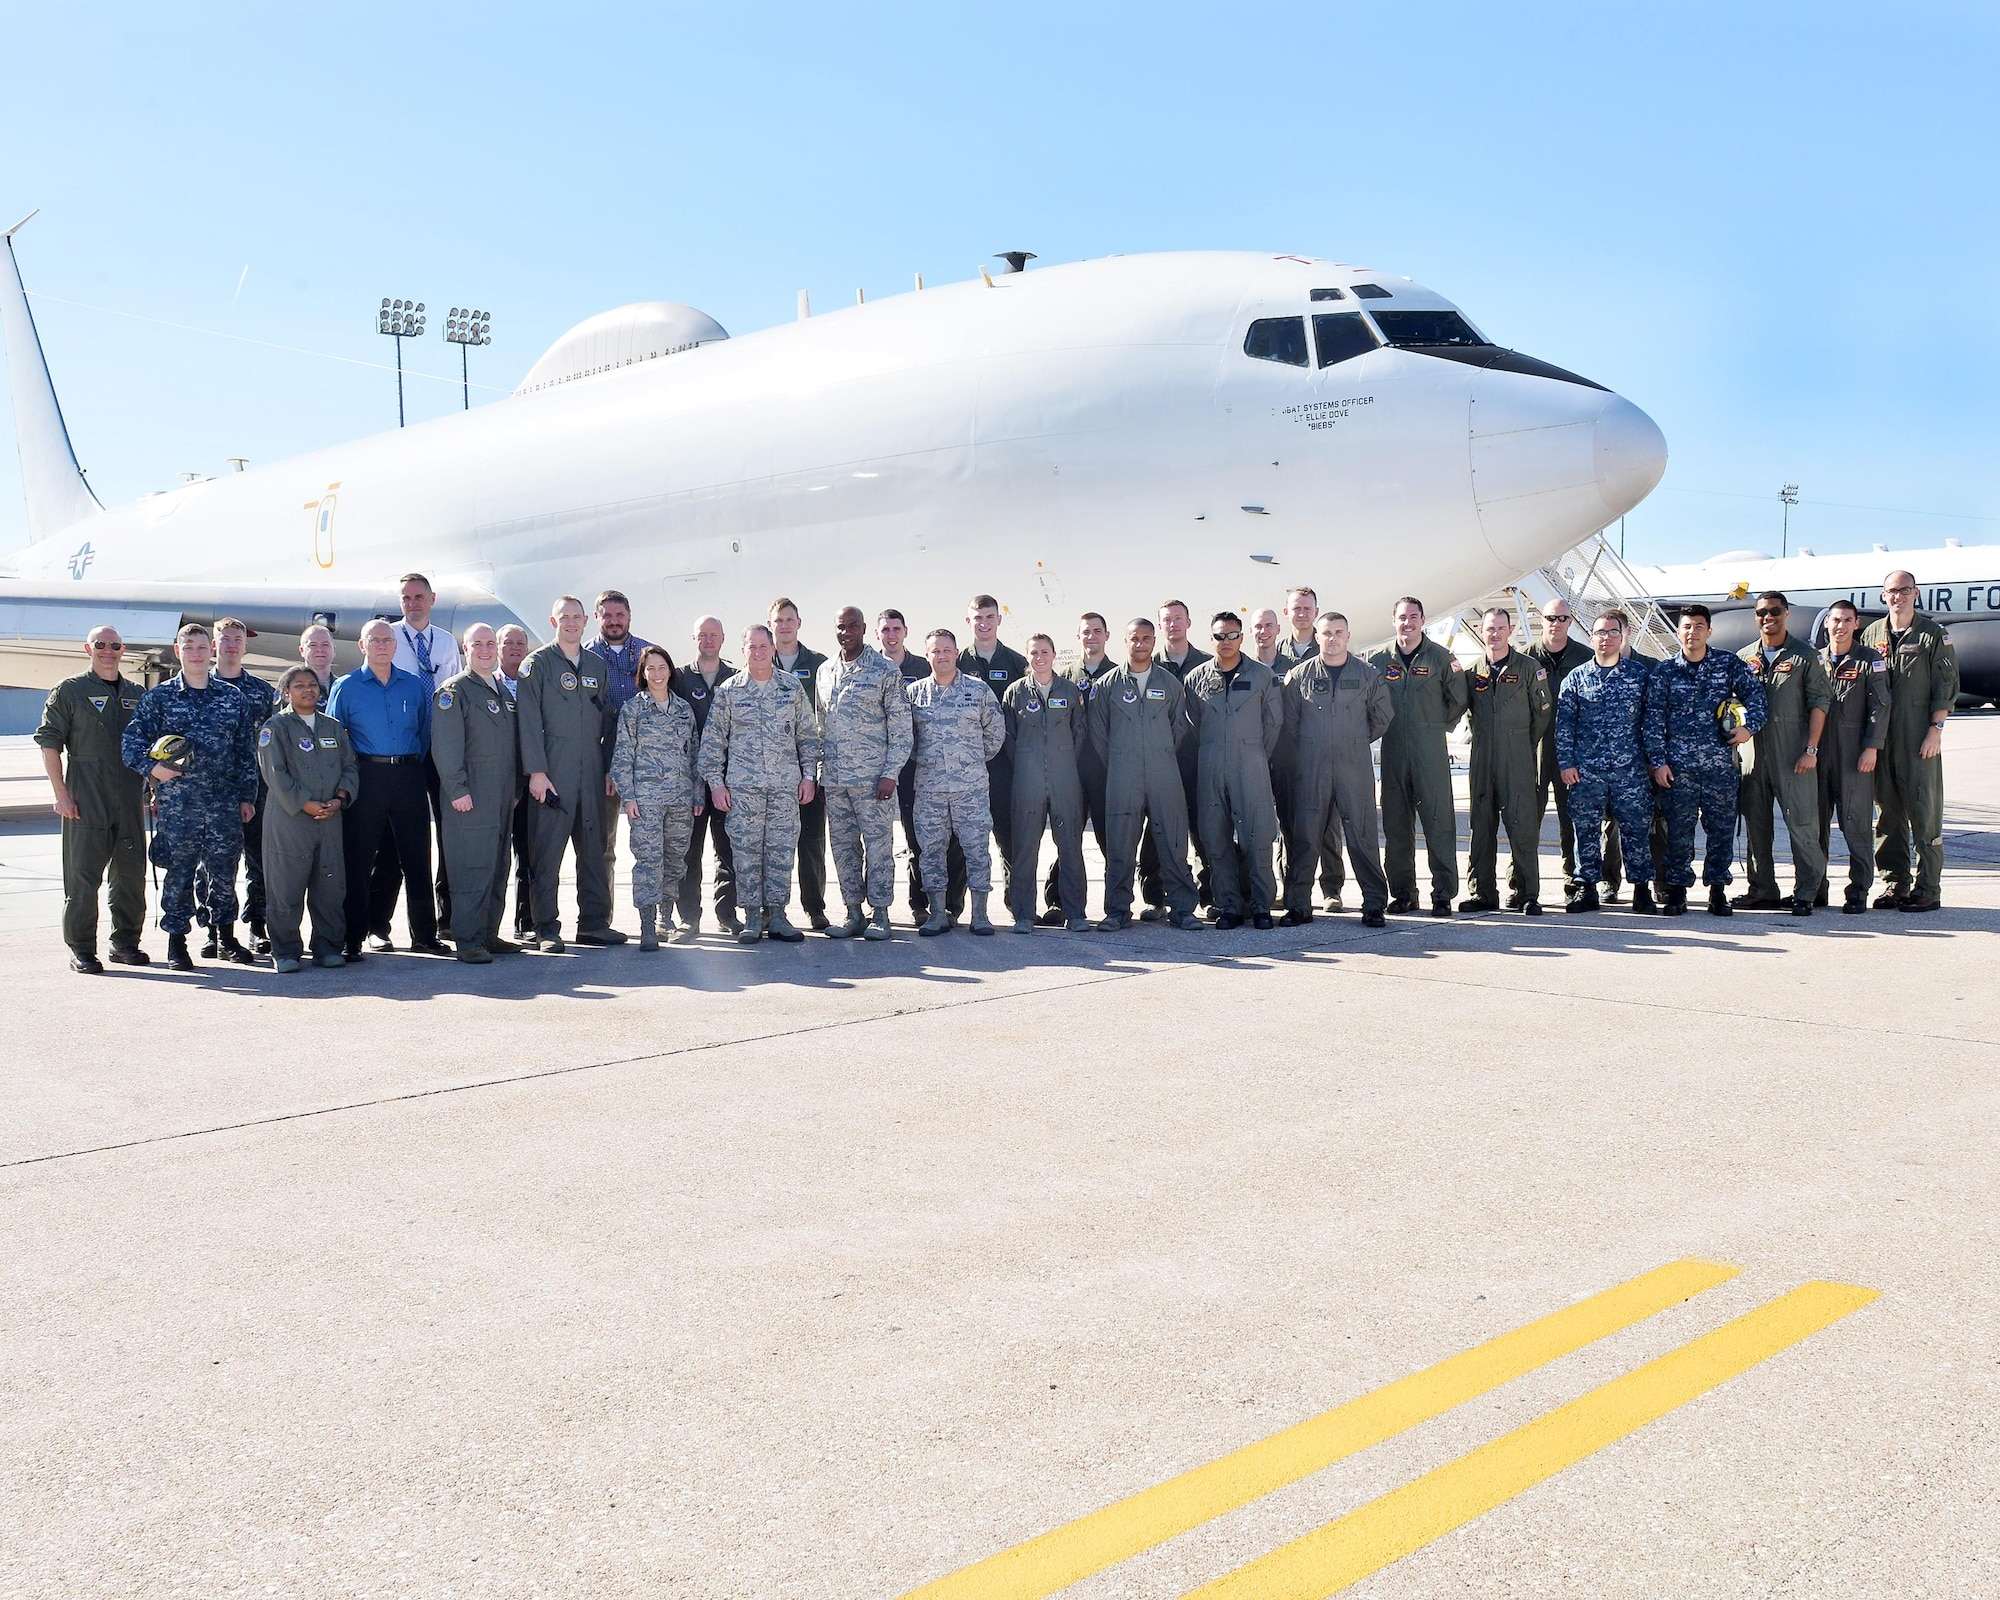 Chief of Staff of the Air Force Gen. David L. Goldfein, sixth from the left in the front row, and Chief Master Sgt. of the Air Force Kaleth O. Wright, fifth from the right in the front row, pose for a photo in front of a Boeing E-6B Mercury Navy aircraft with the 625th Strategic Operations Squadron at Offutt Air Force Base, Nebraska, Oct. 18, 2017. Goldfein and Wright spent much of the day touring the facilities and gaining insight into the base's  current mission sets.